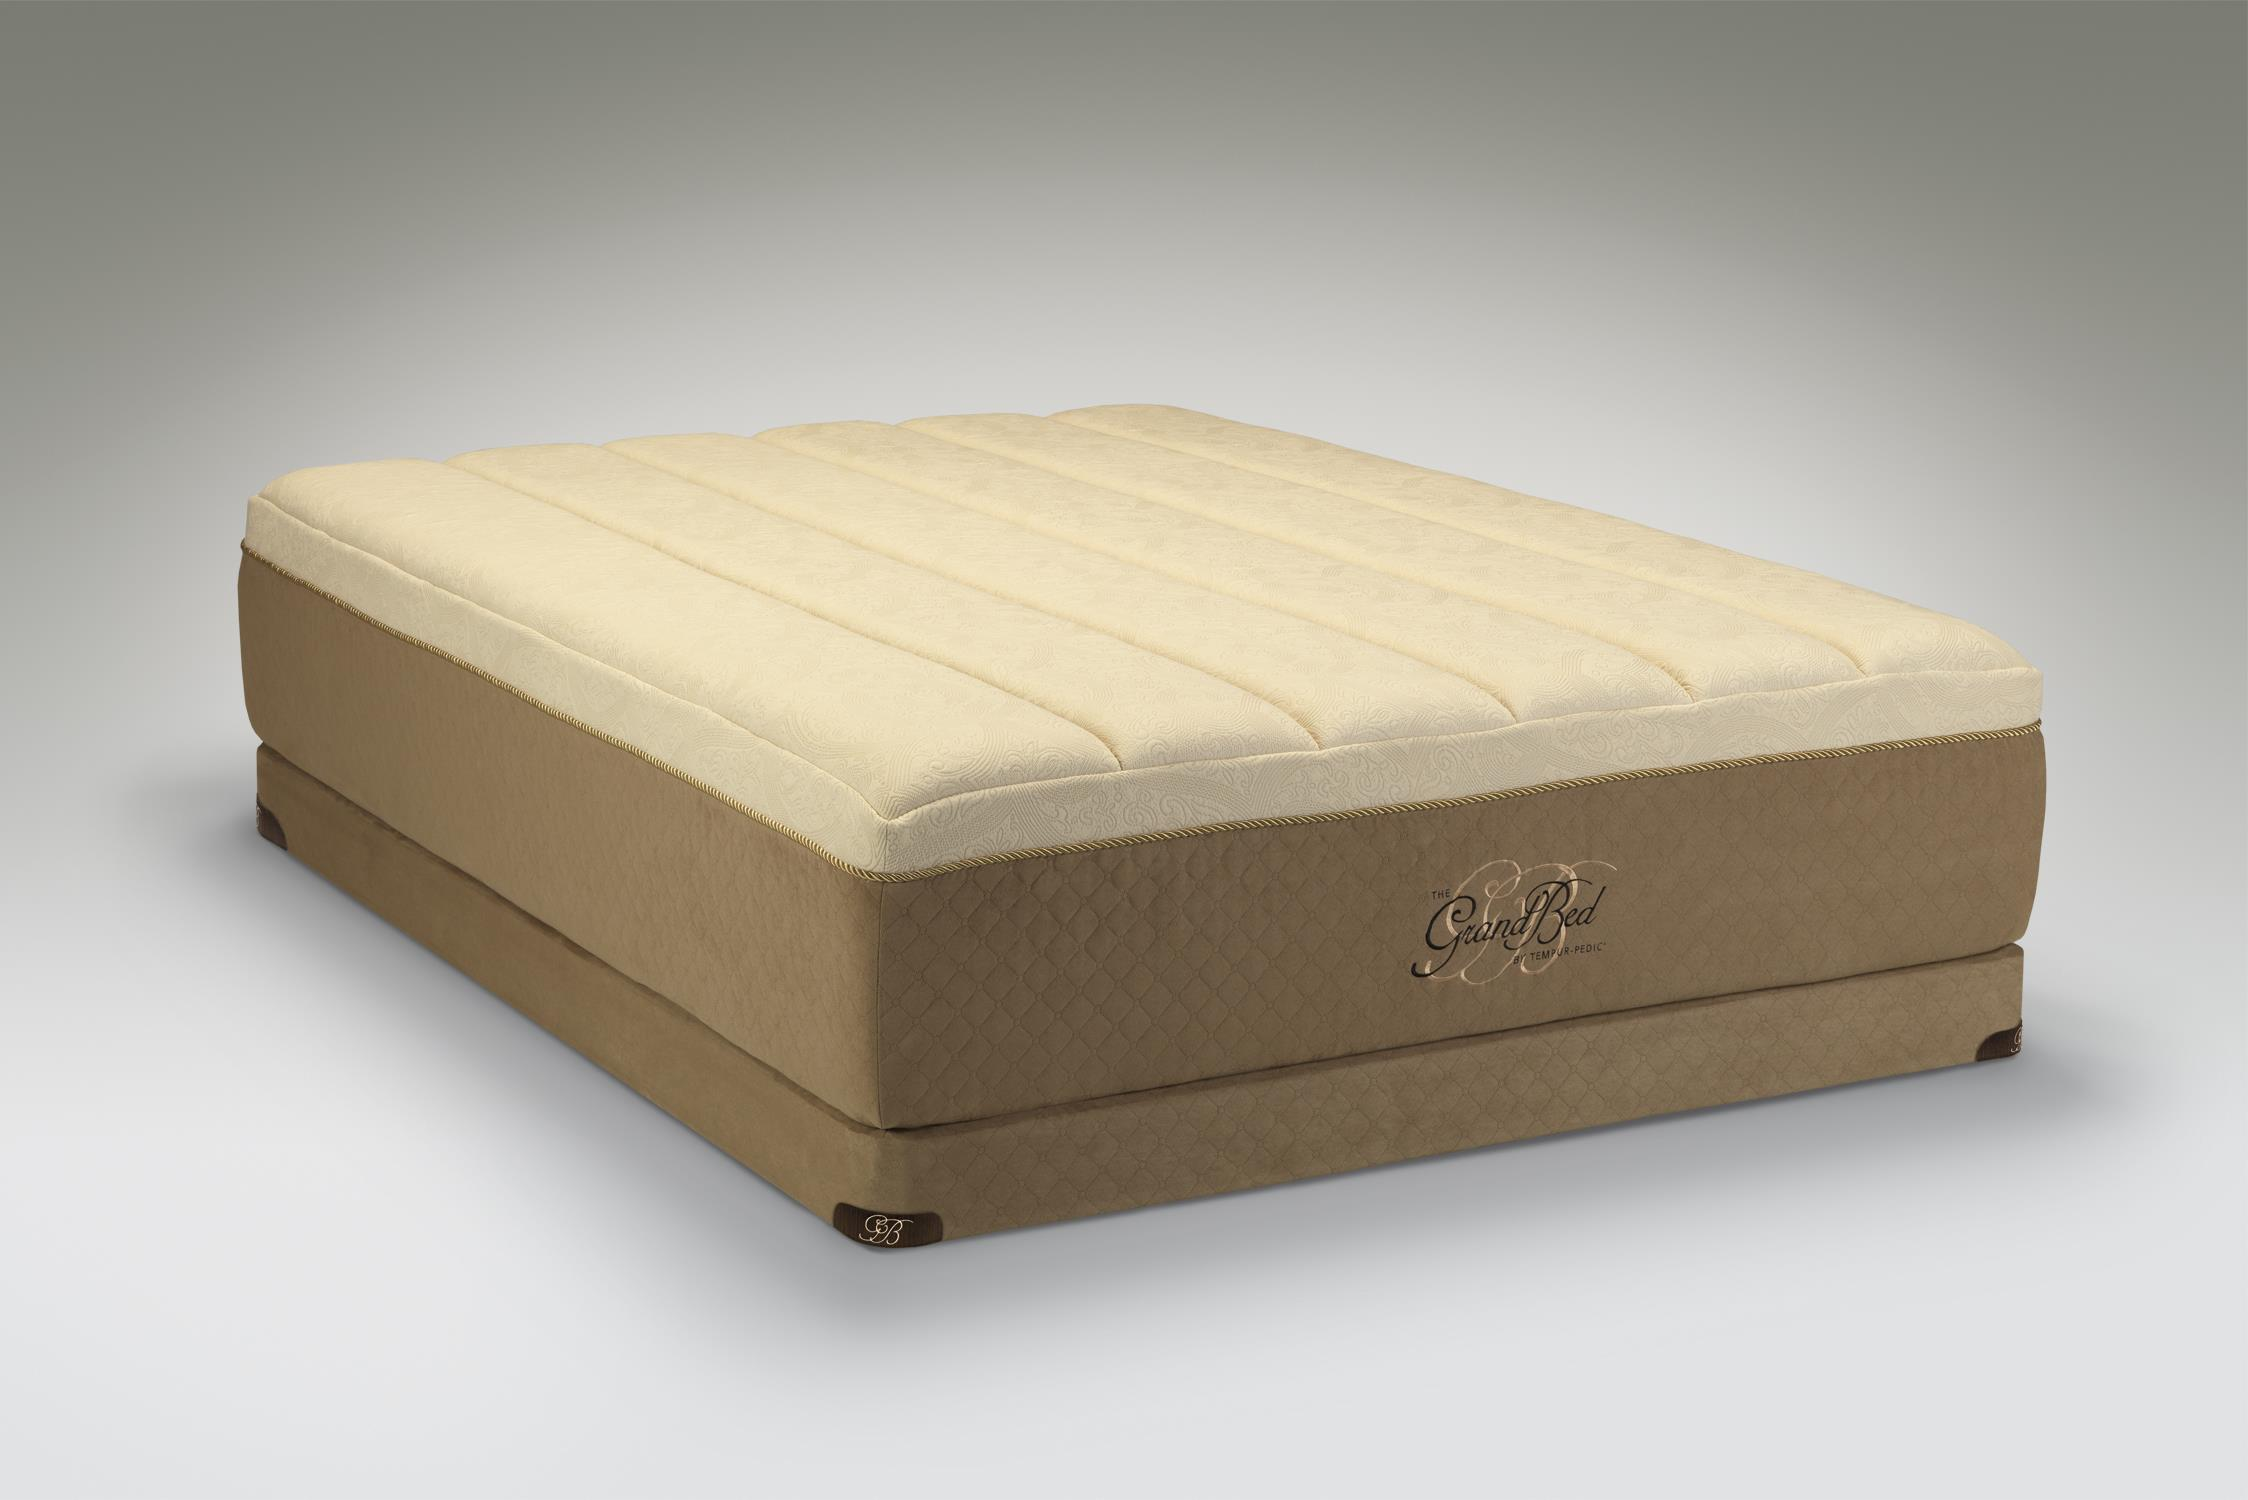 California King Tempur Pedic Mattress Picture TEMPURCloud I